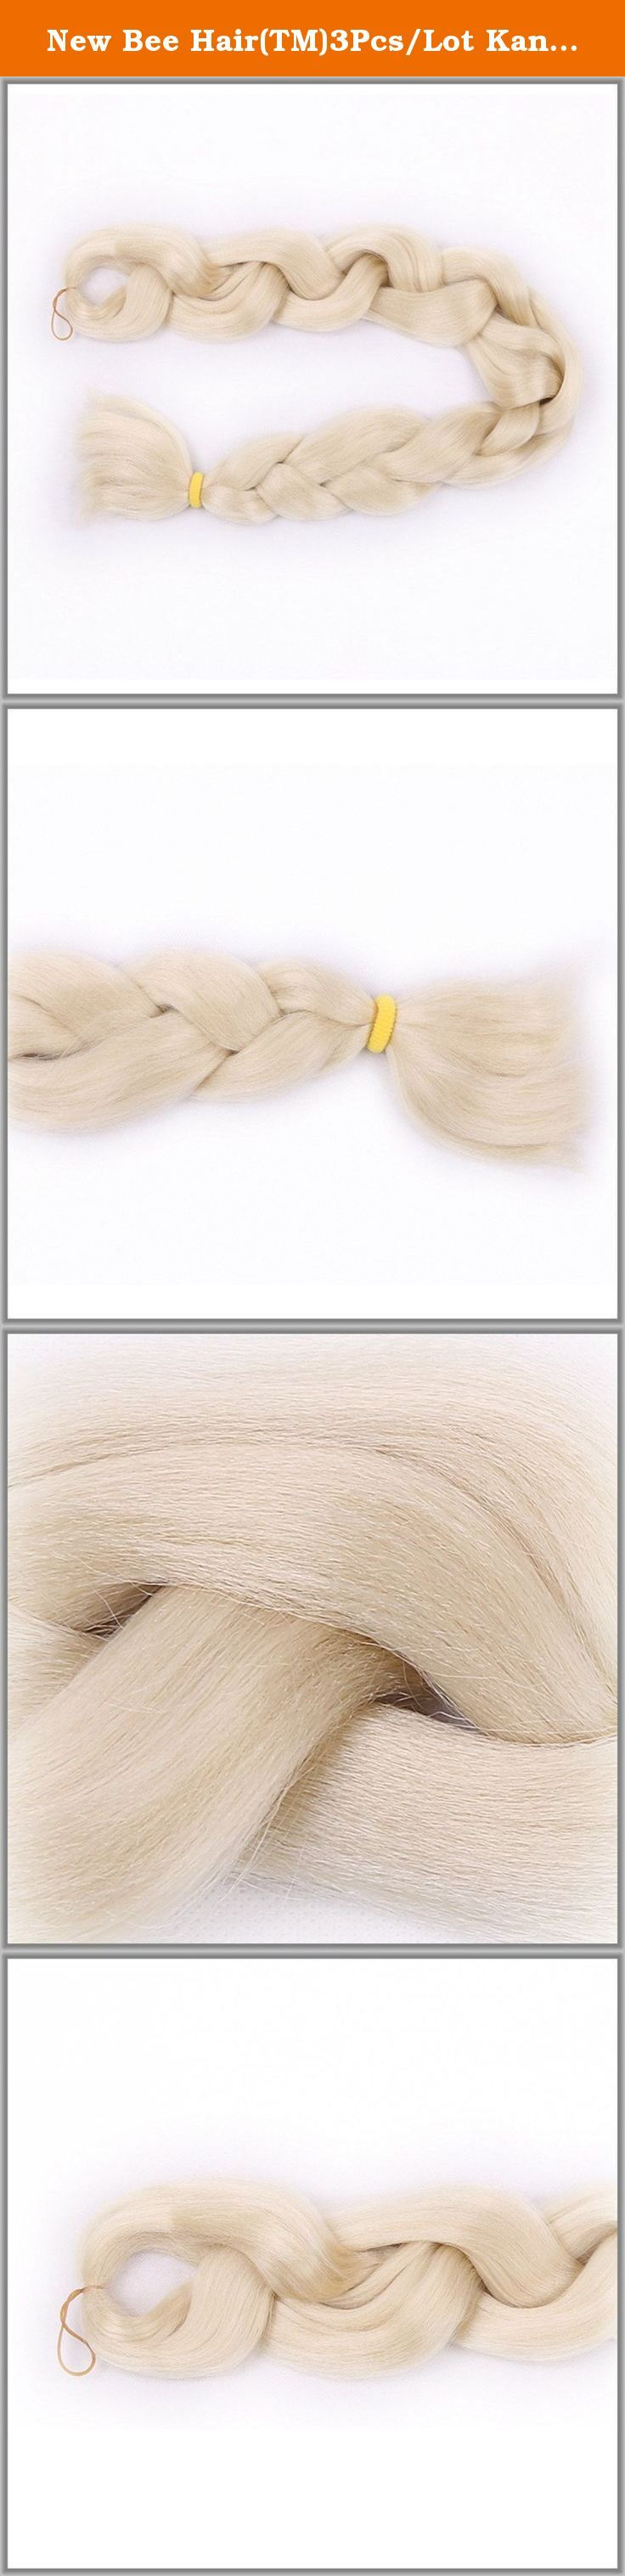 New Bee Hair(TM)3Pcs/Lot Kanekalon #613 Braiding Hair High Temperature Fiber Expression Braiding Hair 165g/Pcs Synthetic Braiding Hair Extension. WHY CHOOSE US ? Are you looking for high quality hair extensions? You are now making right decision to shop with us! New Bee Hair Extensions only offers high quality hair .We are a biggest hair products manufacturer in Xuchang City, which is the hair base in China. As a manufacturer more than 15 year,we have exported our hair products to many...